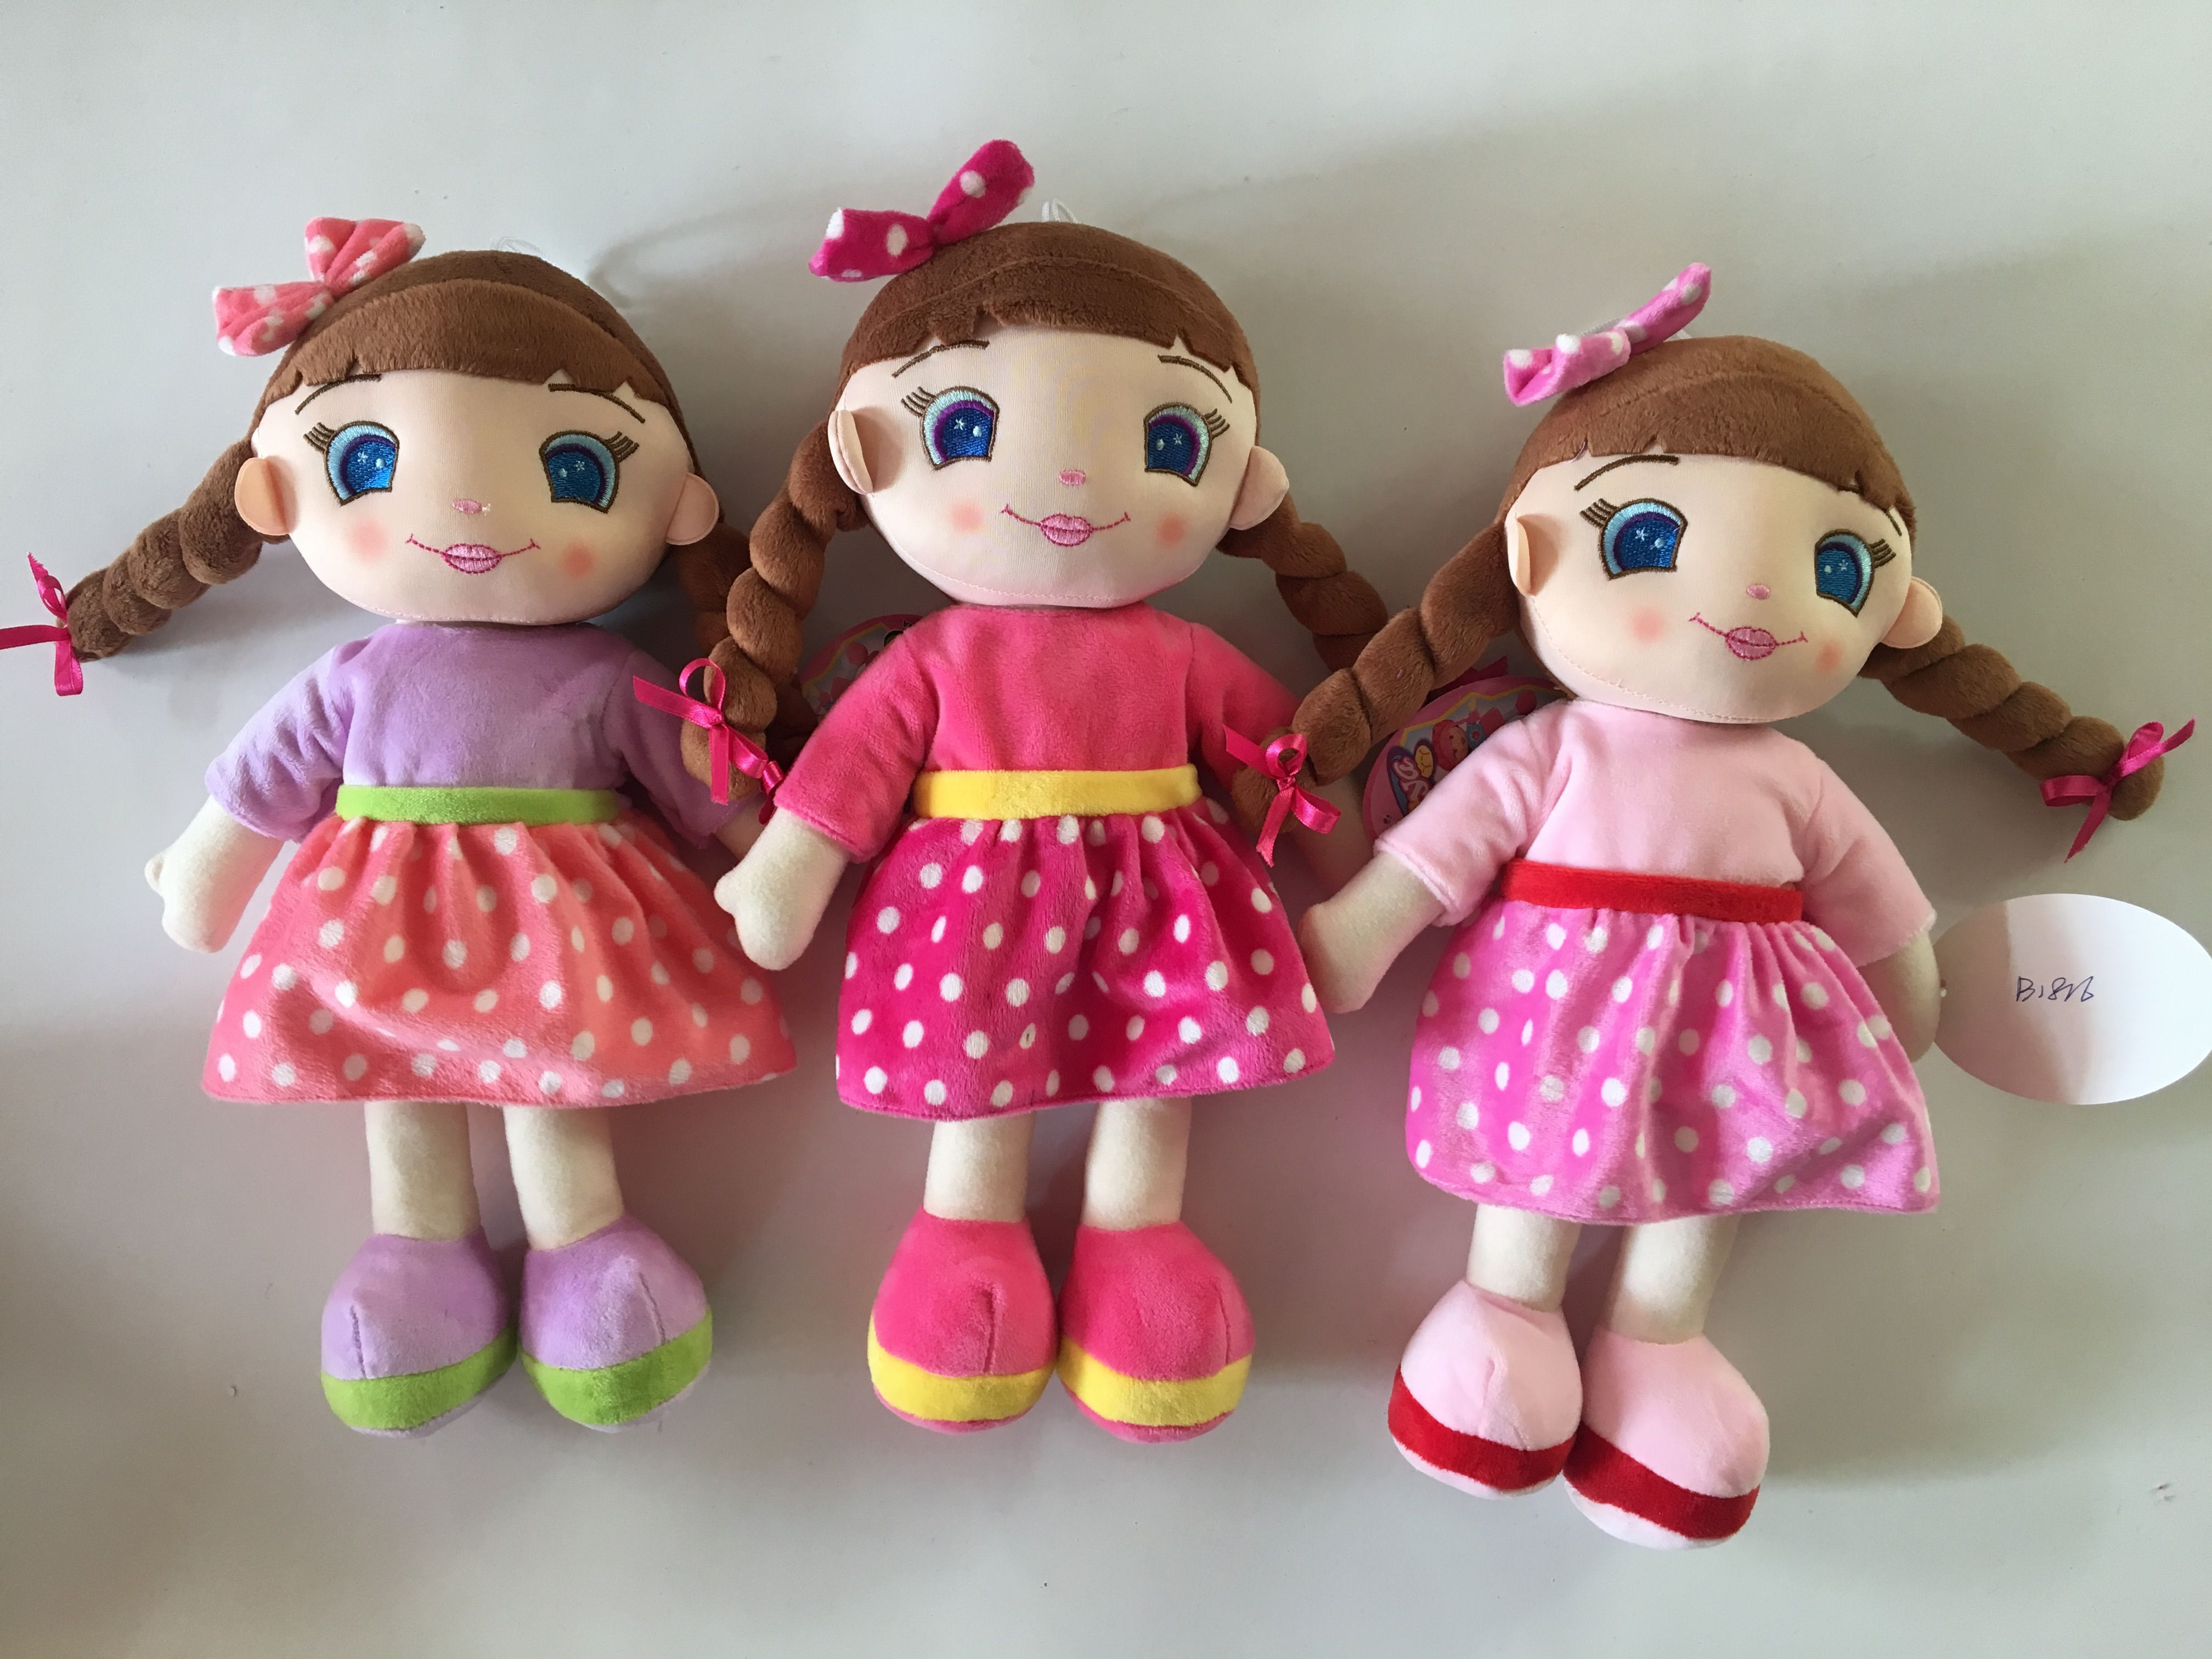 China SMETA Audited custom made rag dolls | cloth dolls | Fabric doll manufacturer